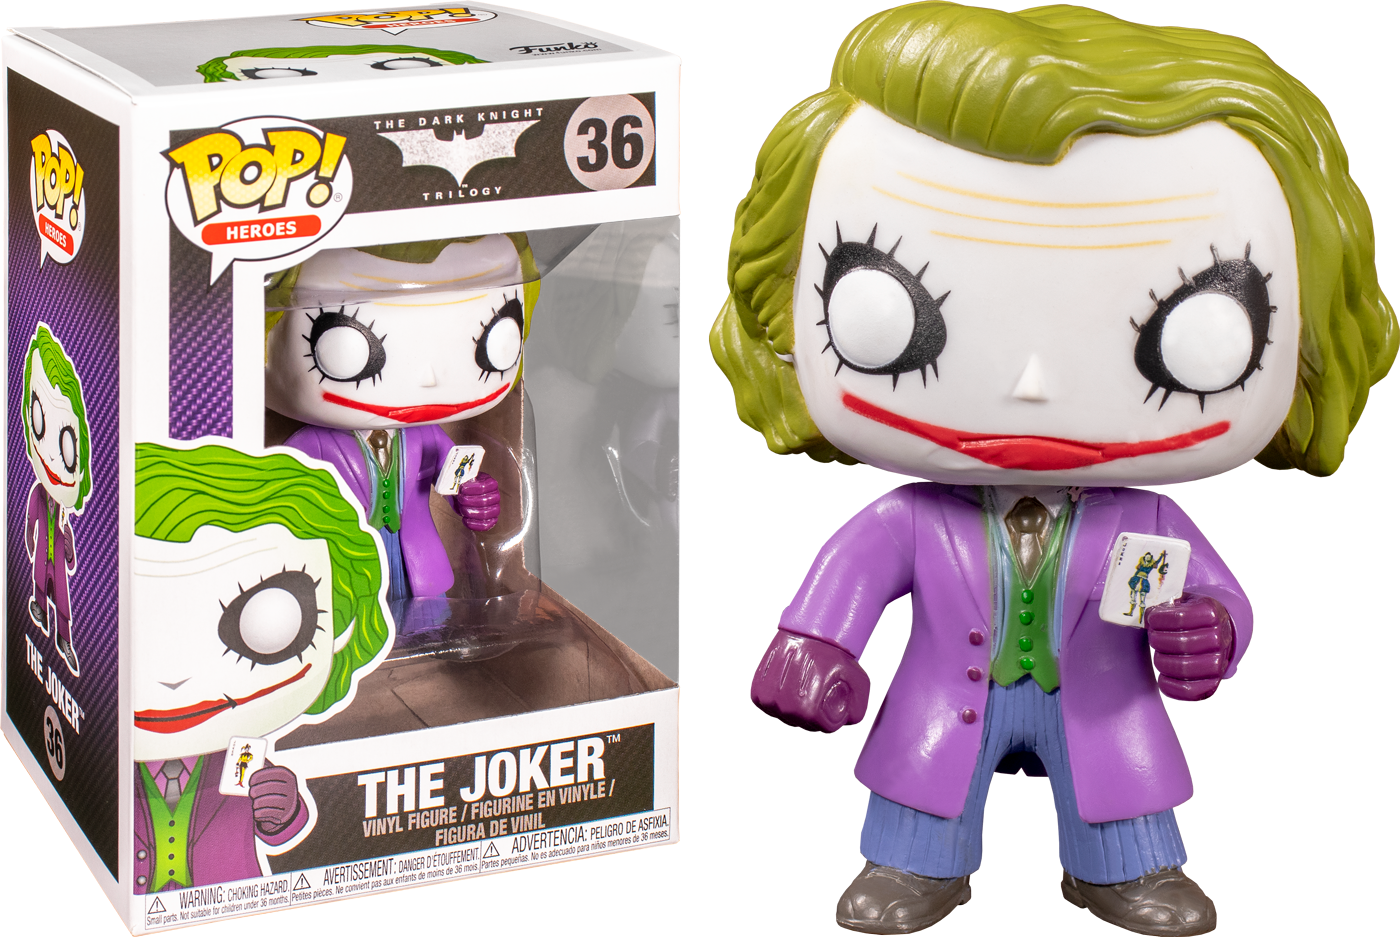 Funko Pop Batman The Dark Knight The Joker 36 The Amazing Collectables